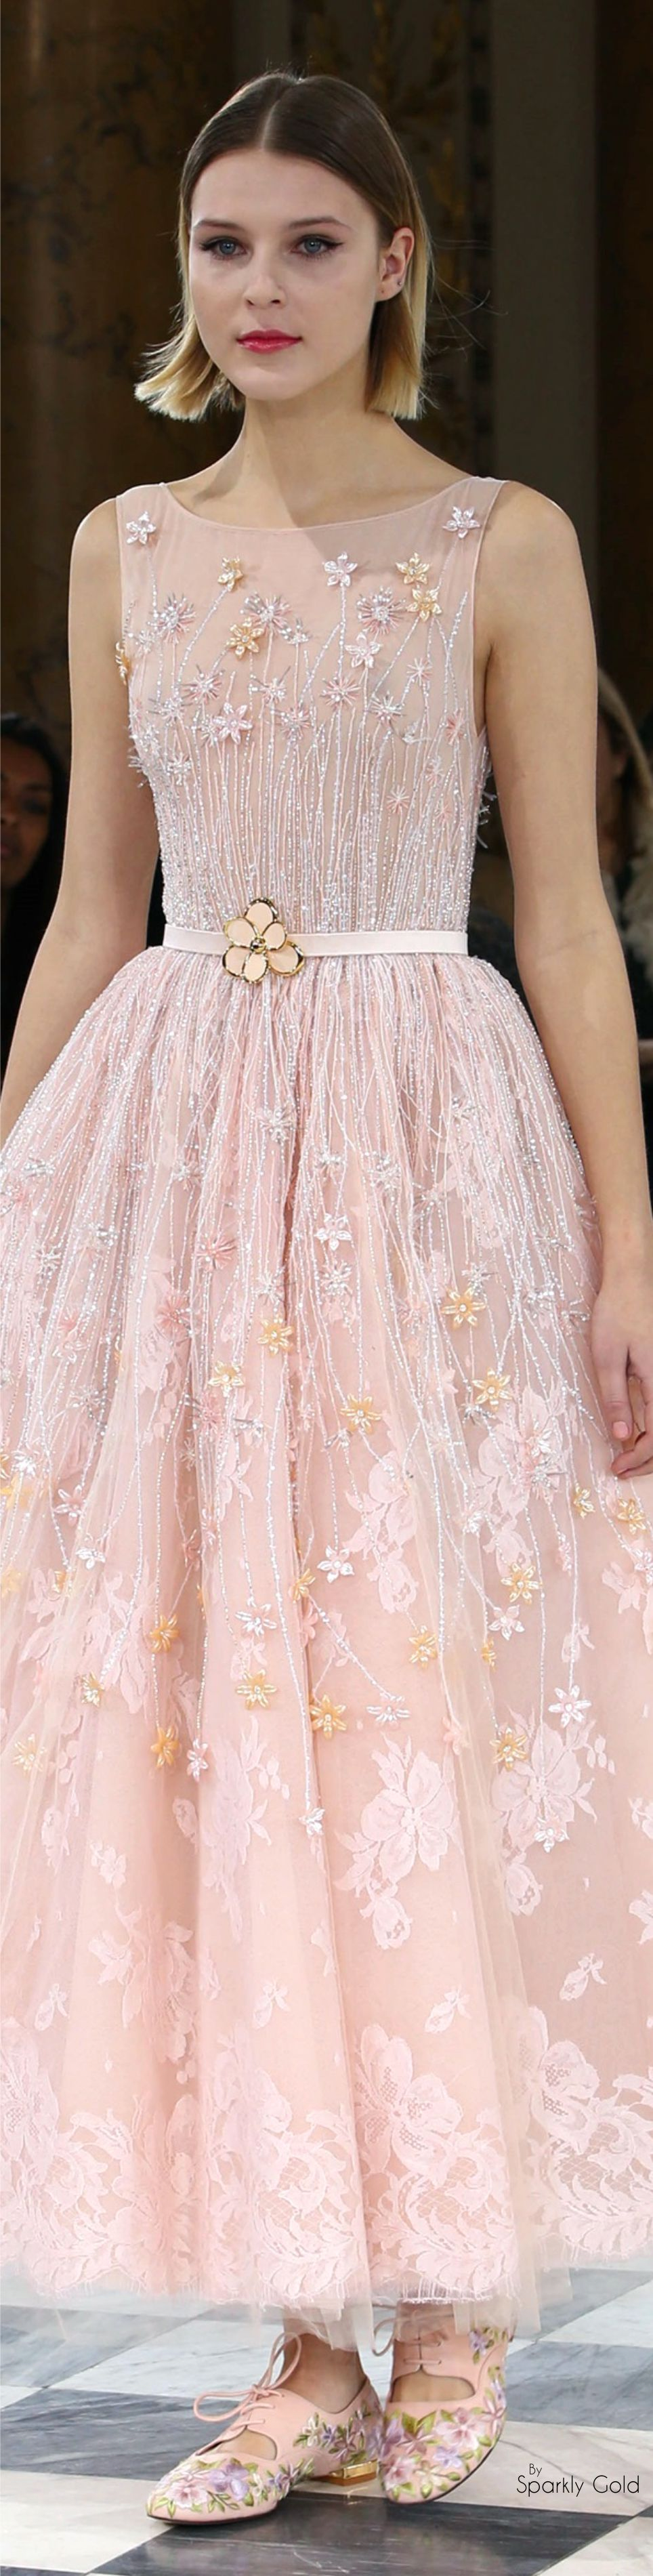 Georges Hobeika Spring 2016 Couture | Mon passion | Pinterest ...